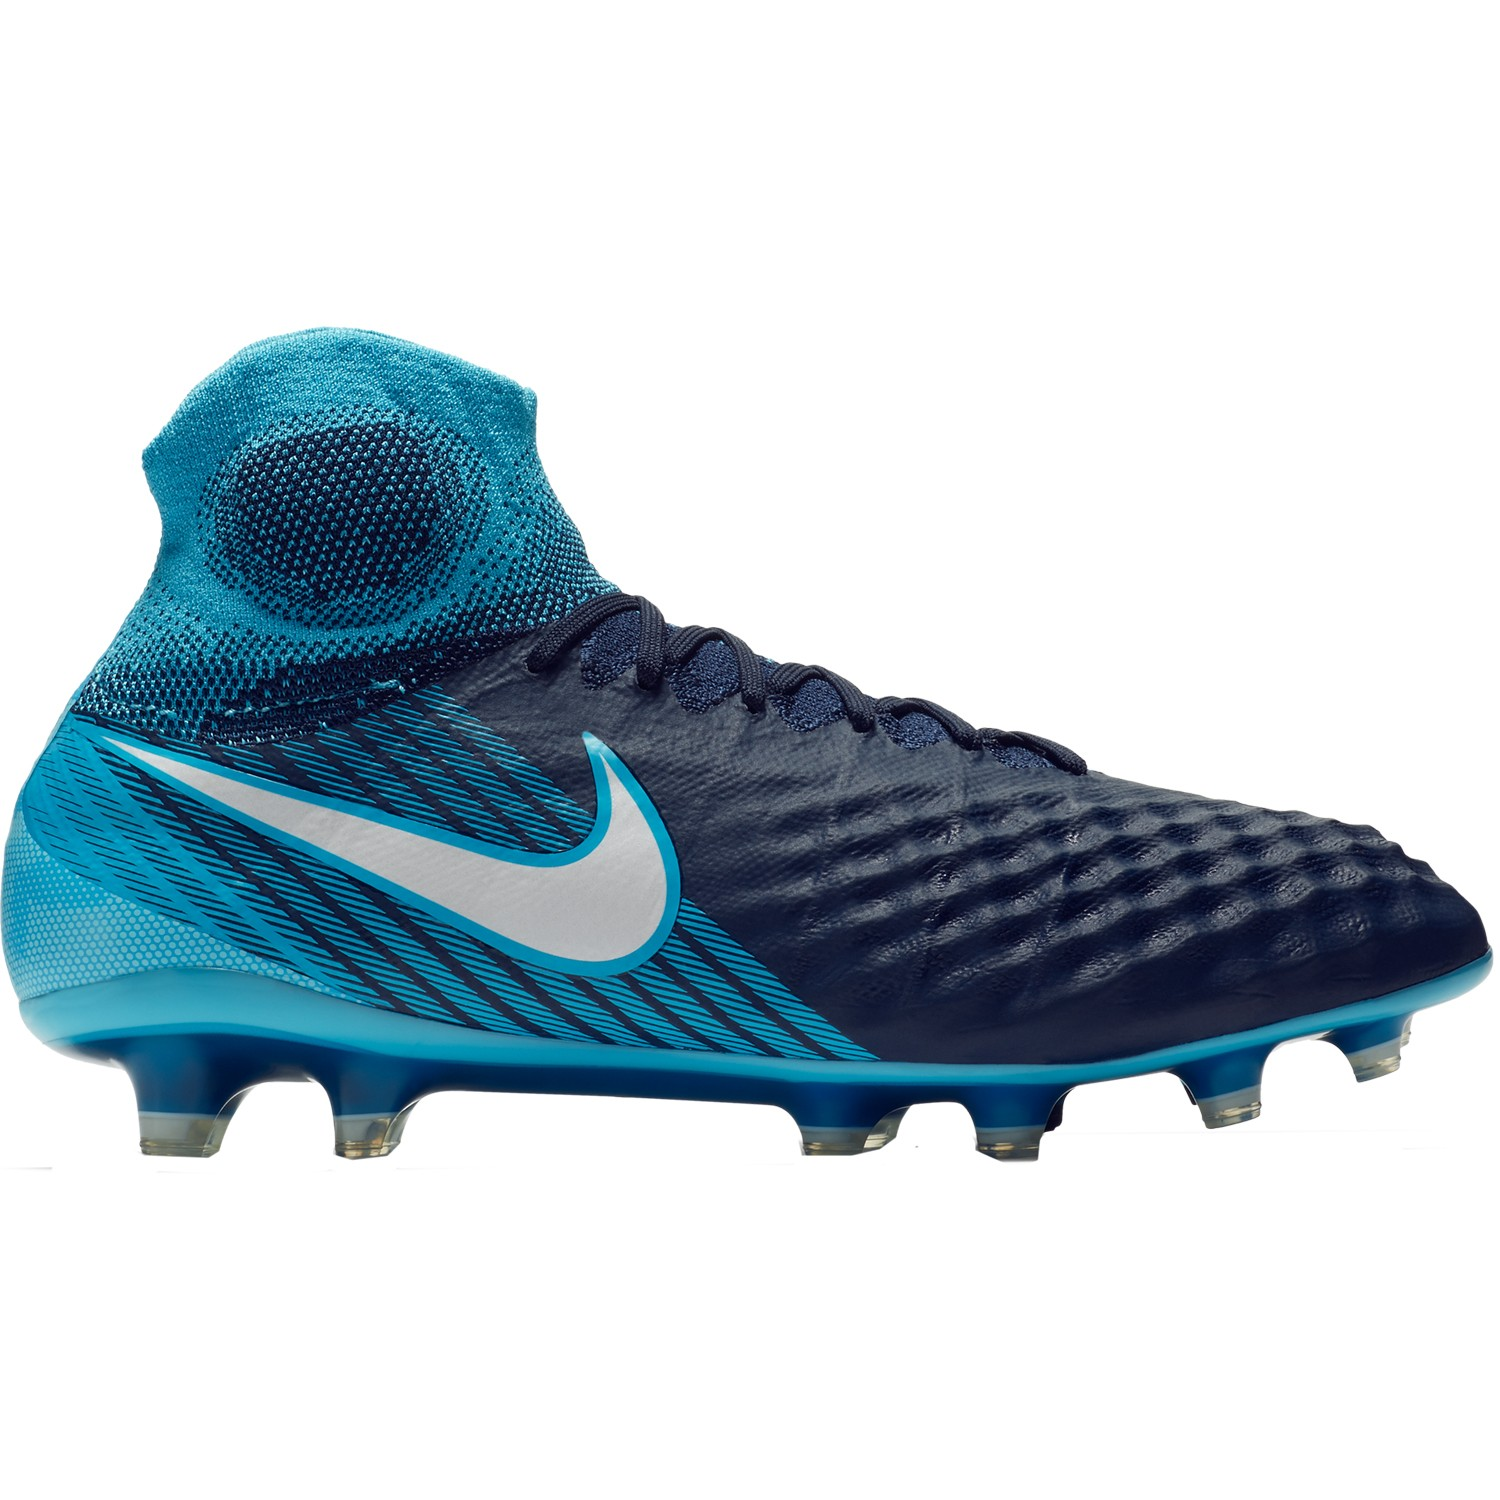 Nike soccer cleats more views. nike magista obra ii fg soccer cleats ... PDOVSDH